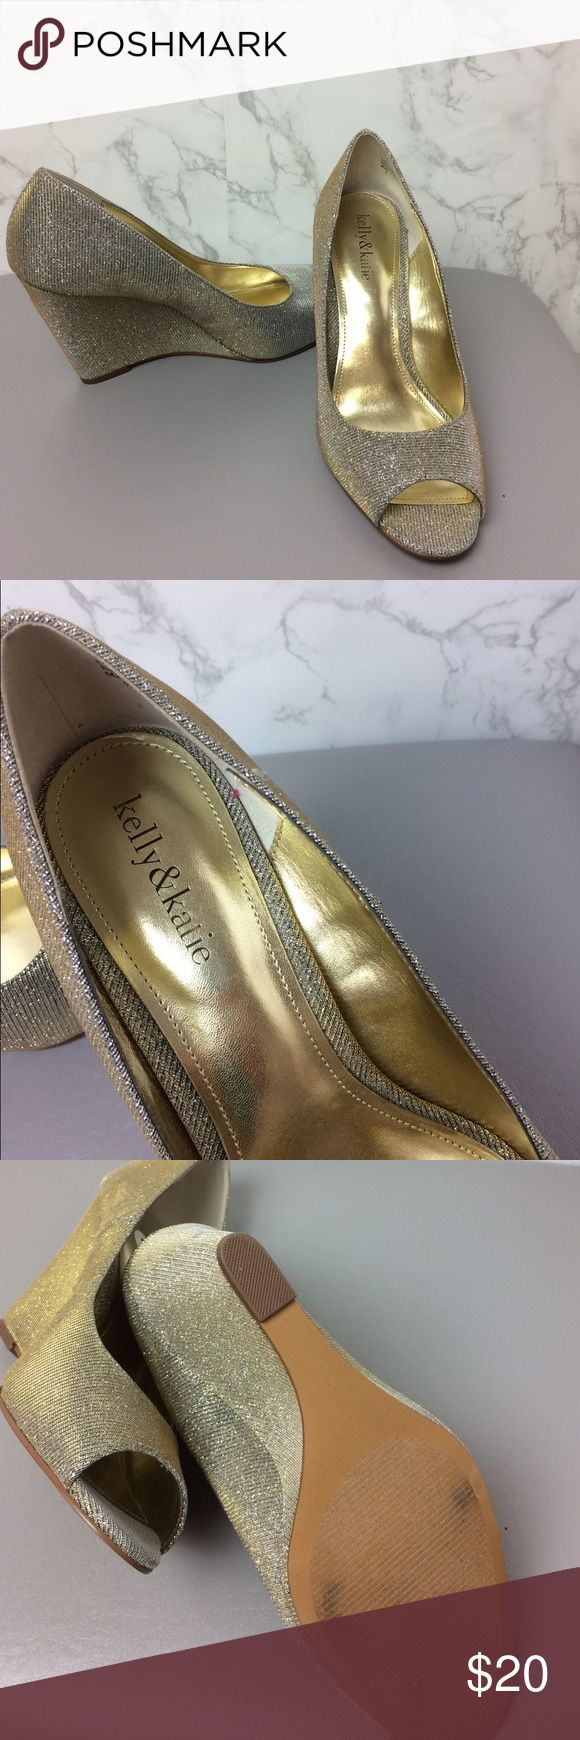 """KELLY & KATIE Size 9 Neutral Metallic Wedge Heel KELLY & KATIE heels.  Size 9.  Neutral sparkle metallic fabric. This color would go with silver or gold! Wedge heel.  4"""" heel.  Shoes have been tried on in store only- NEW! Kelly & Katie Shoes Wedges"""